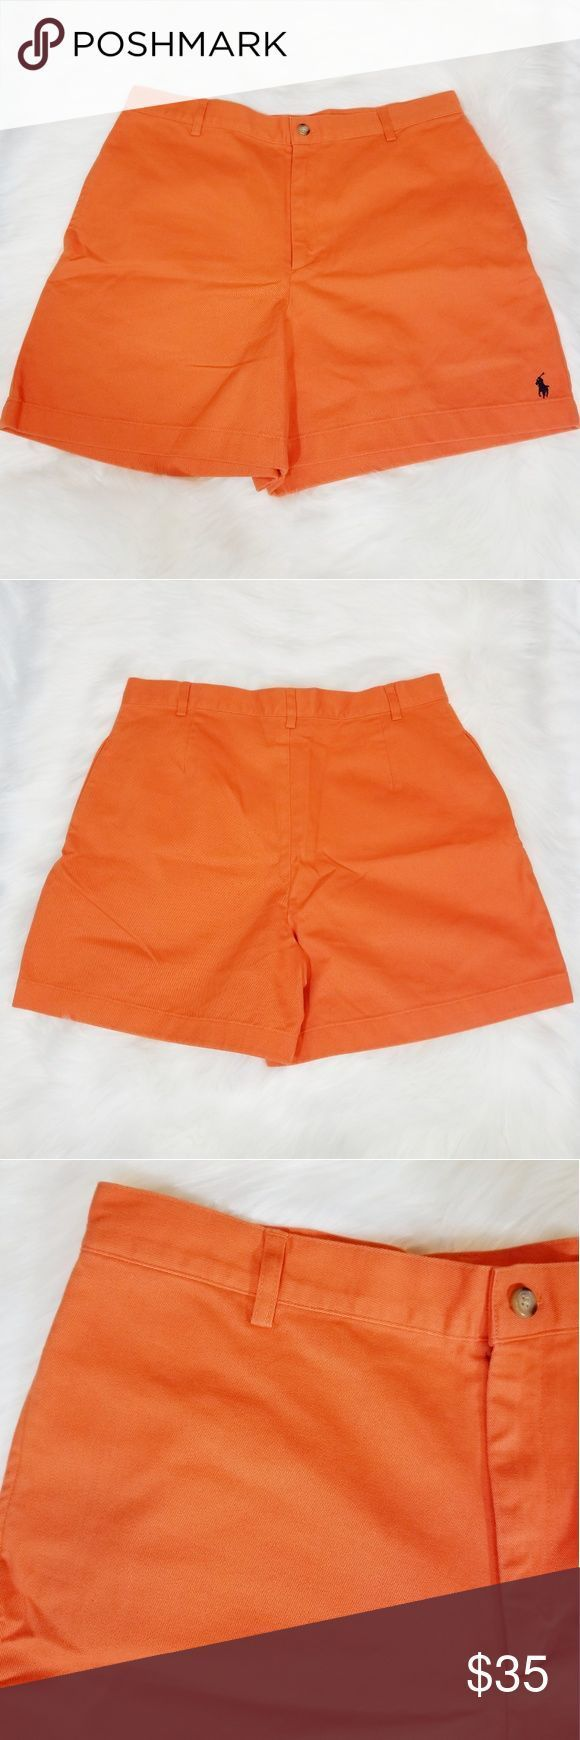 {Ralph Lauren Sport} Orange bescheidene Shorts Super Shorts von Ralph Lauren Spo …   – Shorts